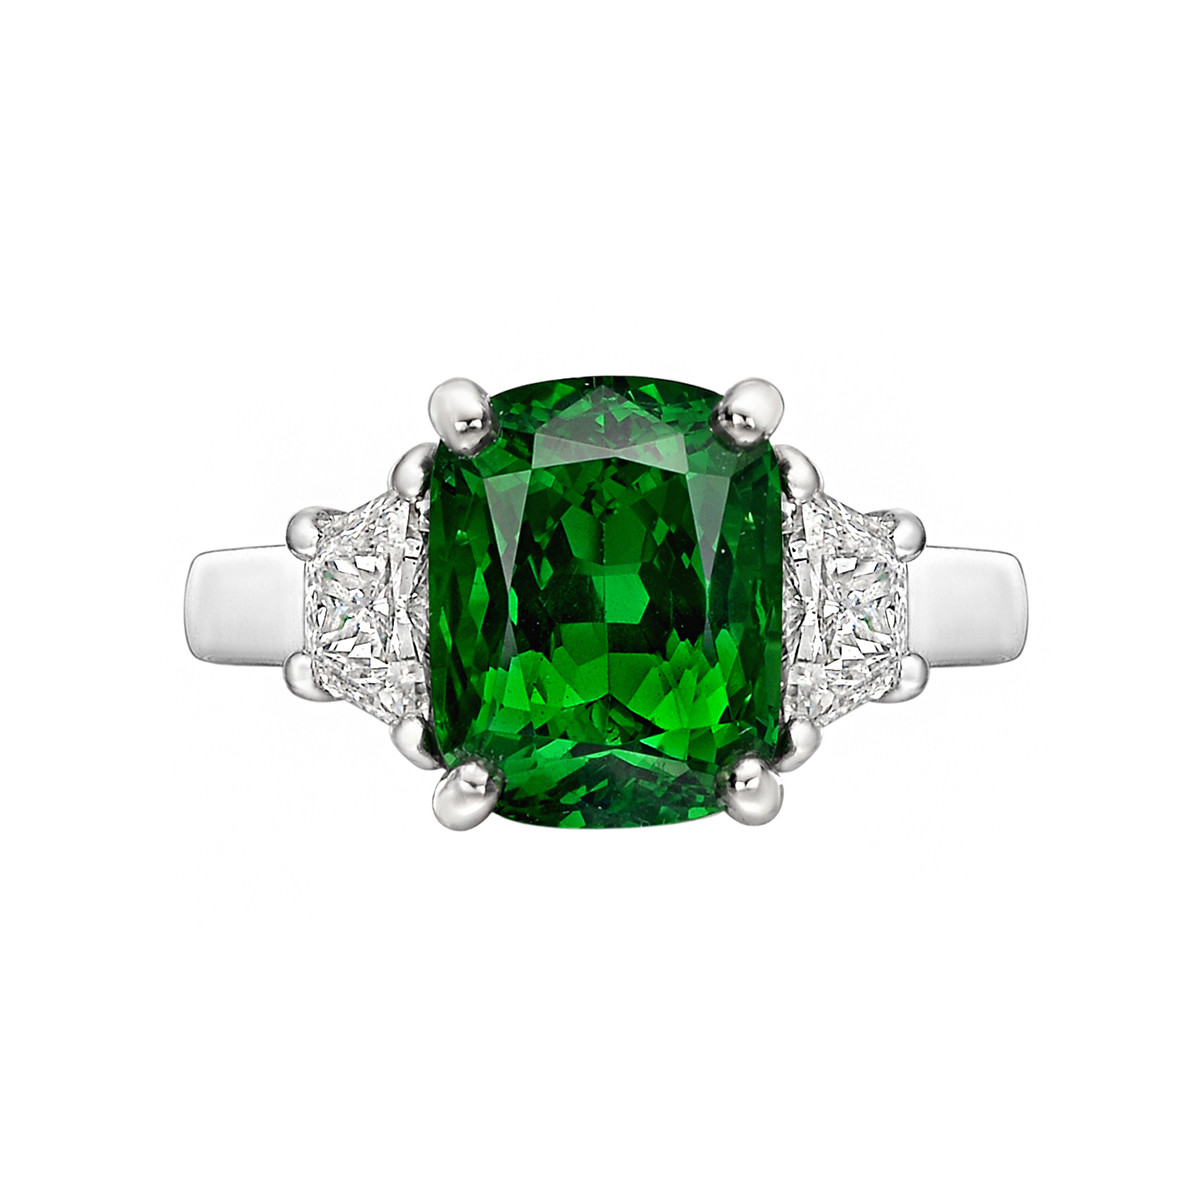 4.20ct Tsavorite Garnet & Diamond Ring